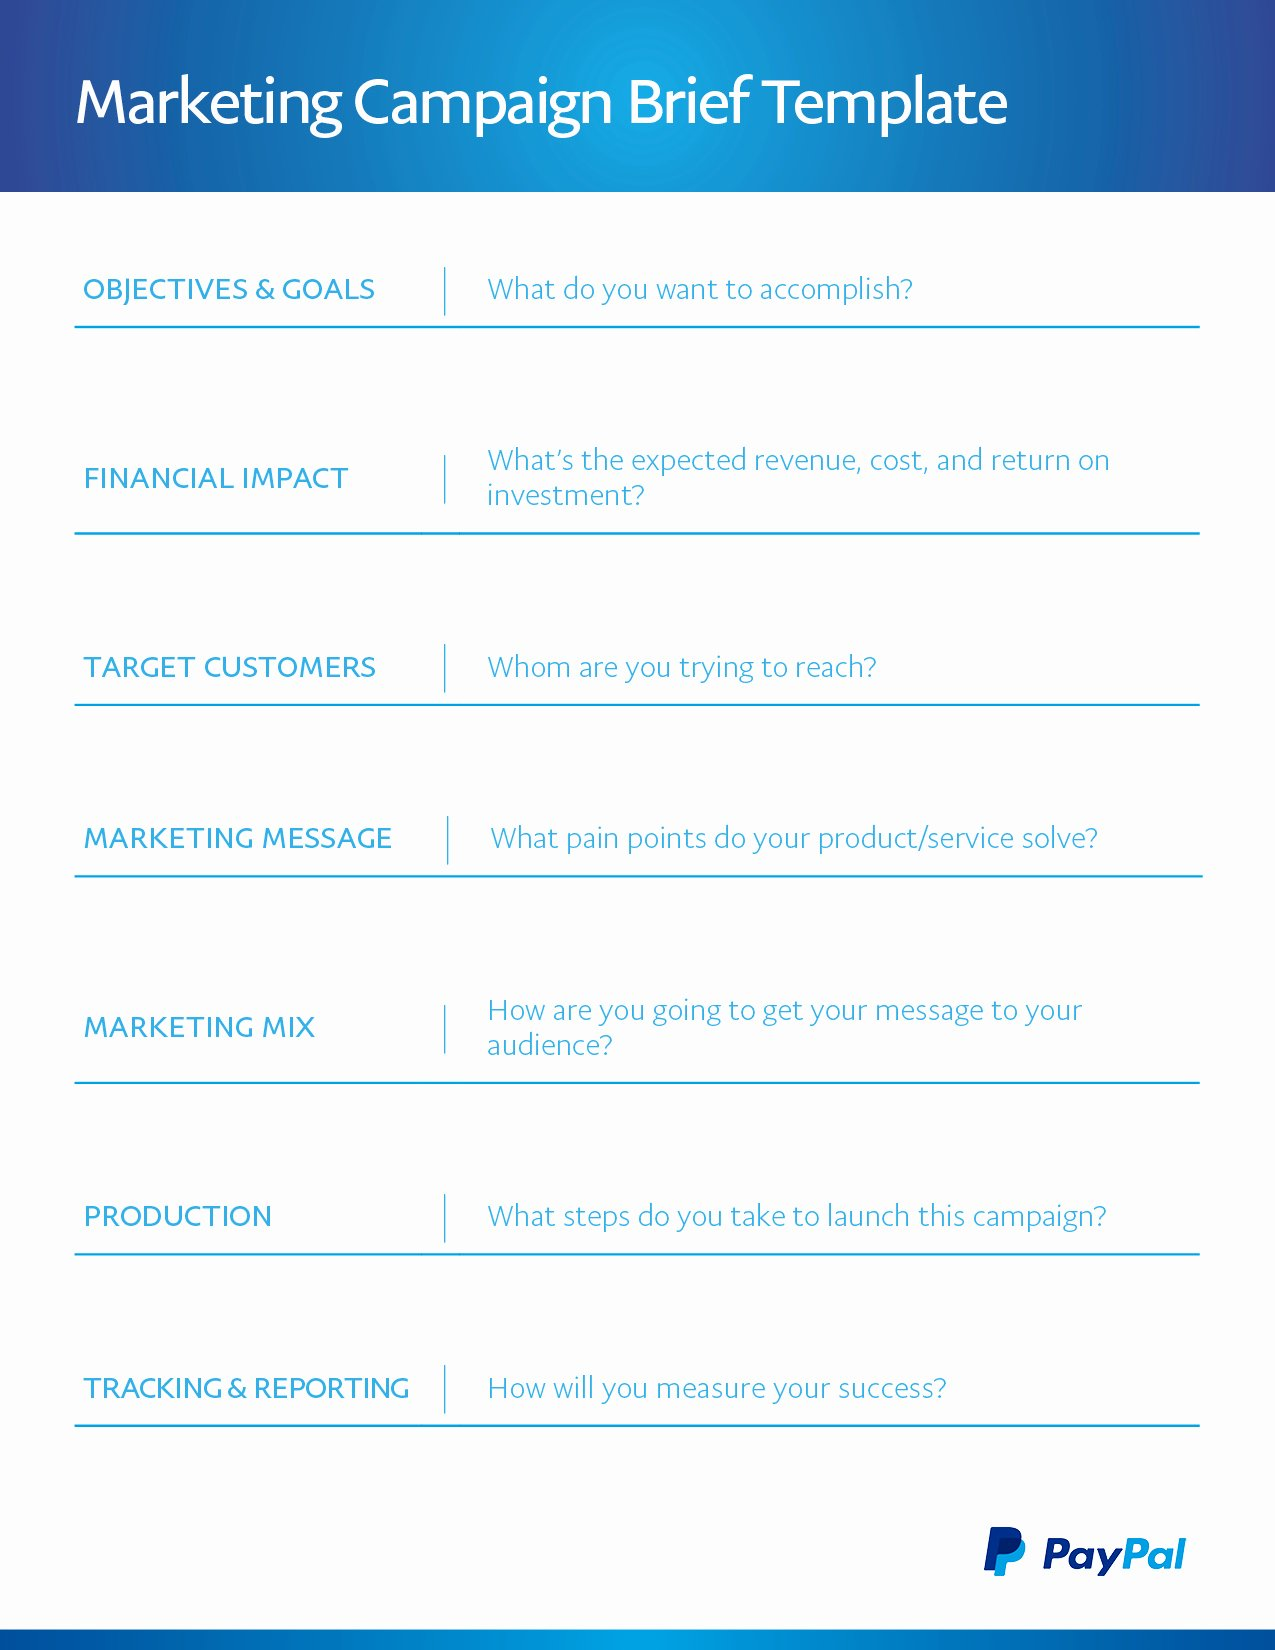 Marketing Campaign Template Awesome the Basics Of A Successful Marketing Campaign Brief